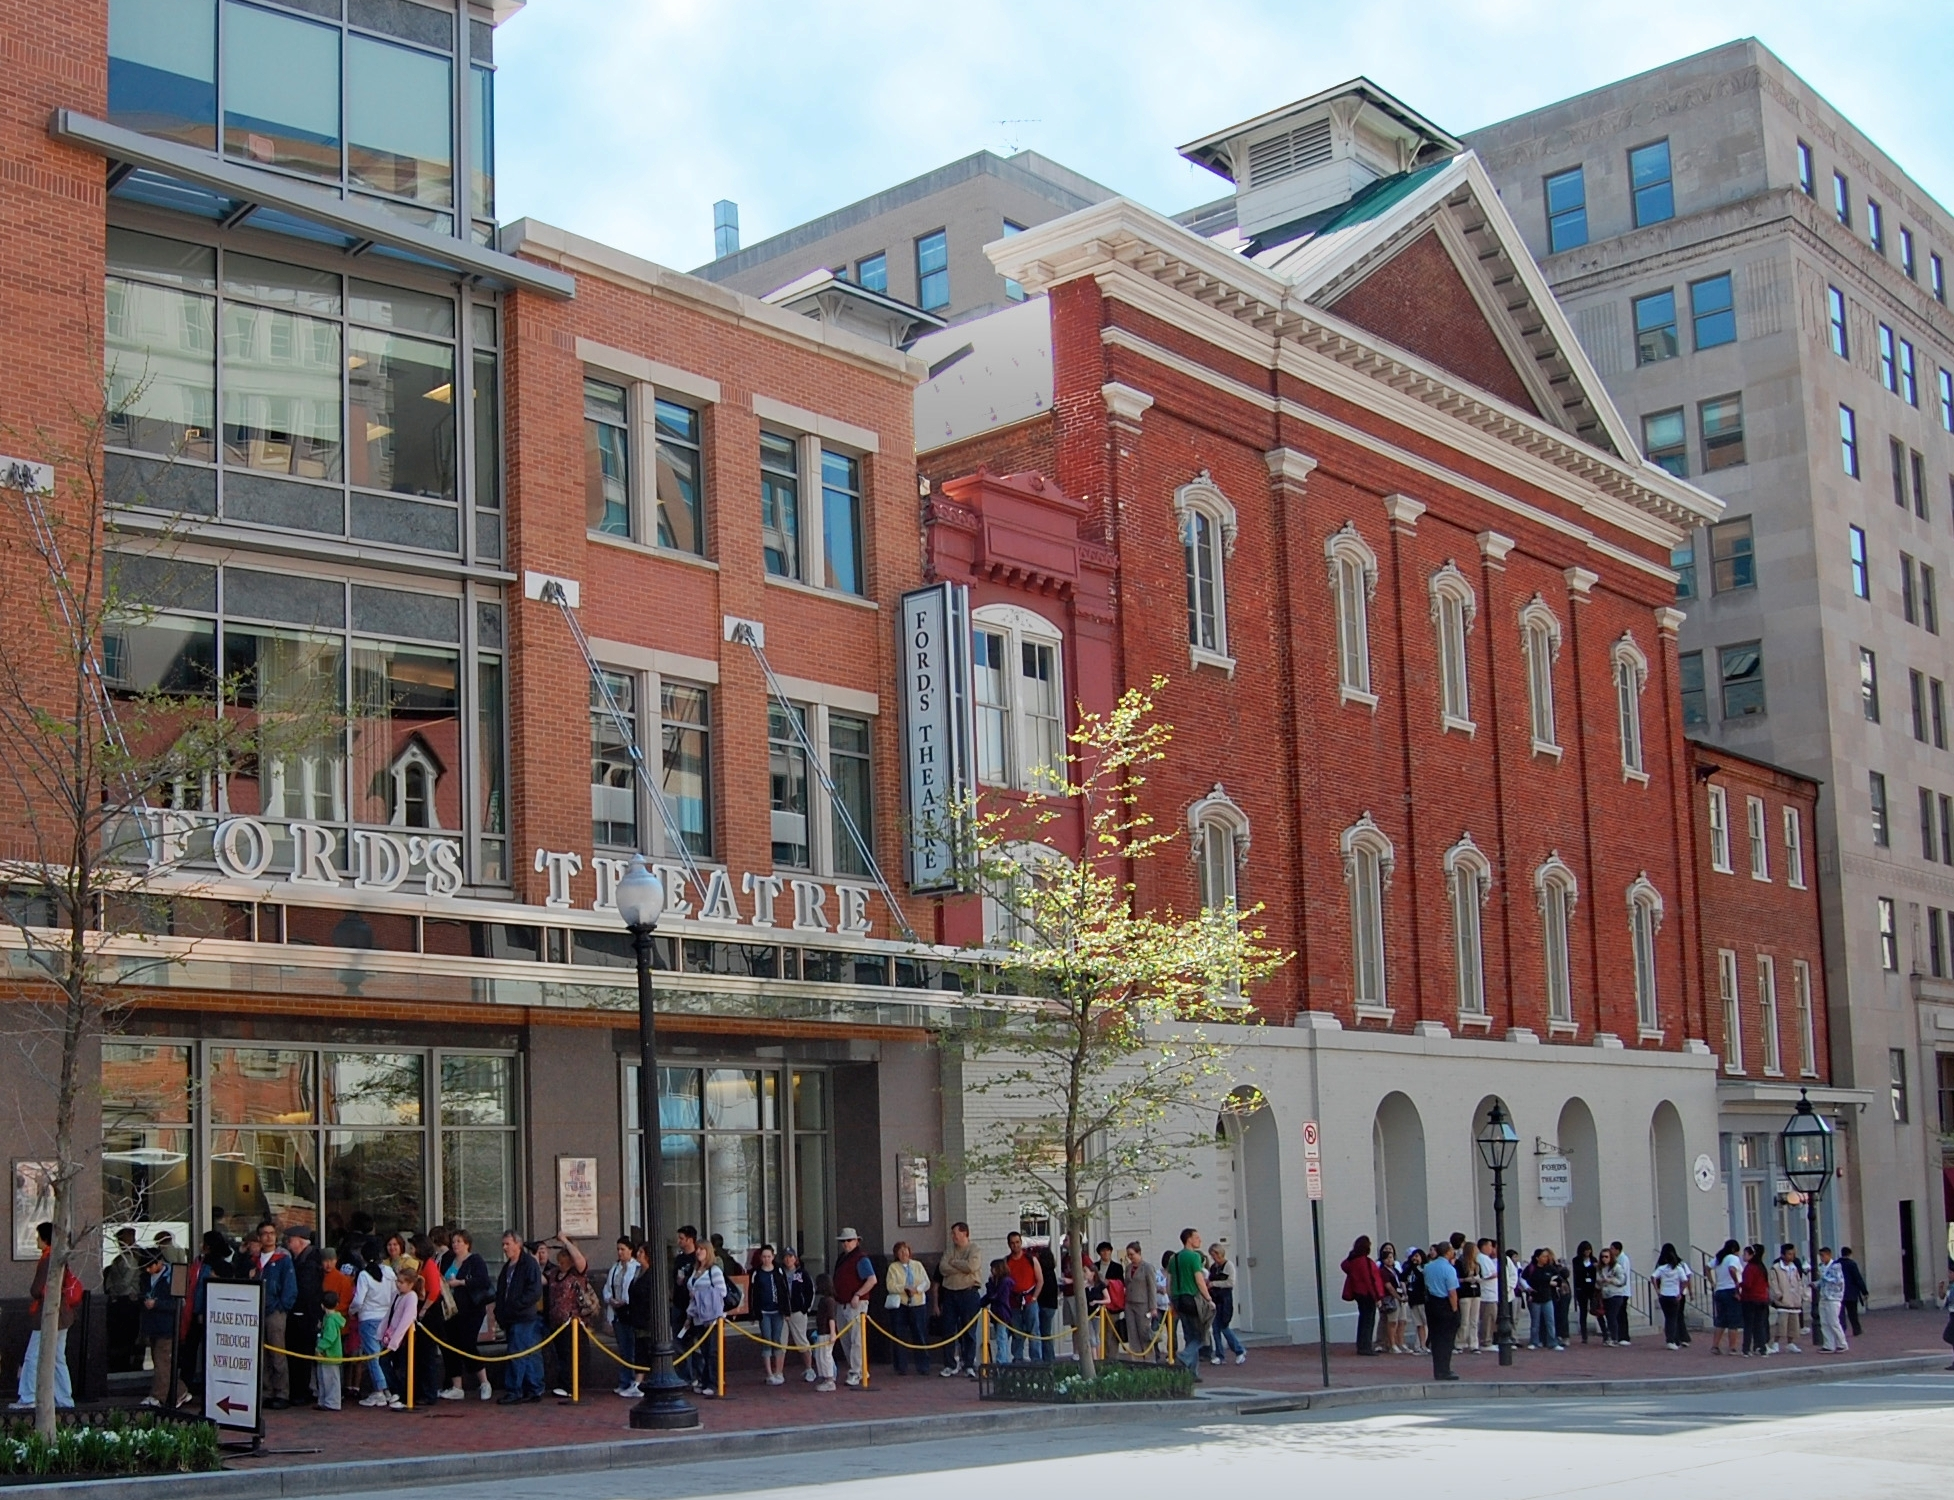 Street view of the exterior of Ford's Theatre on a sunny day.